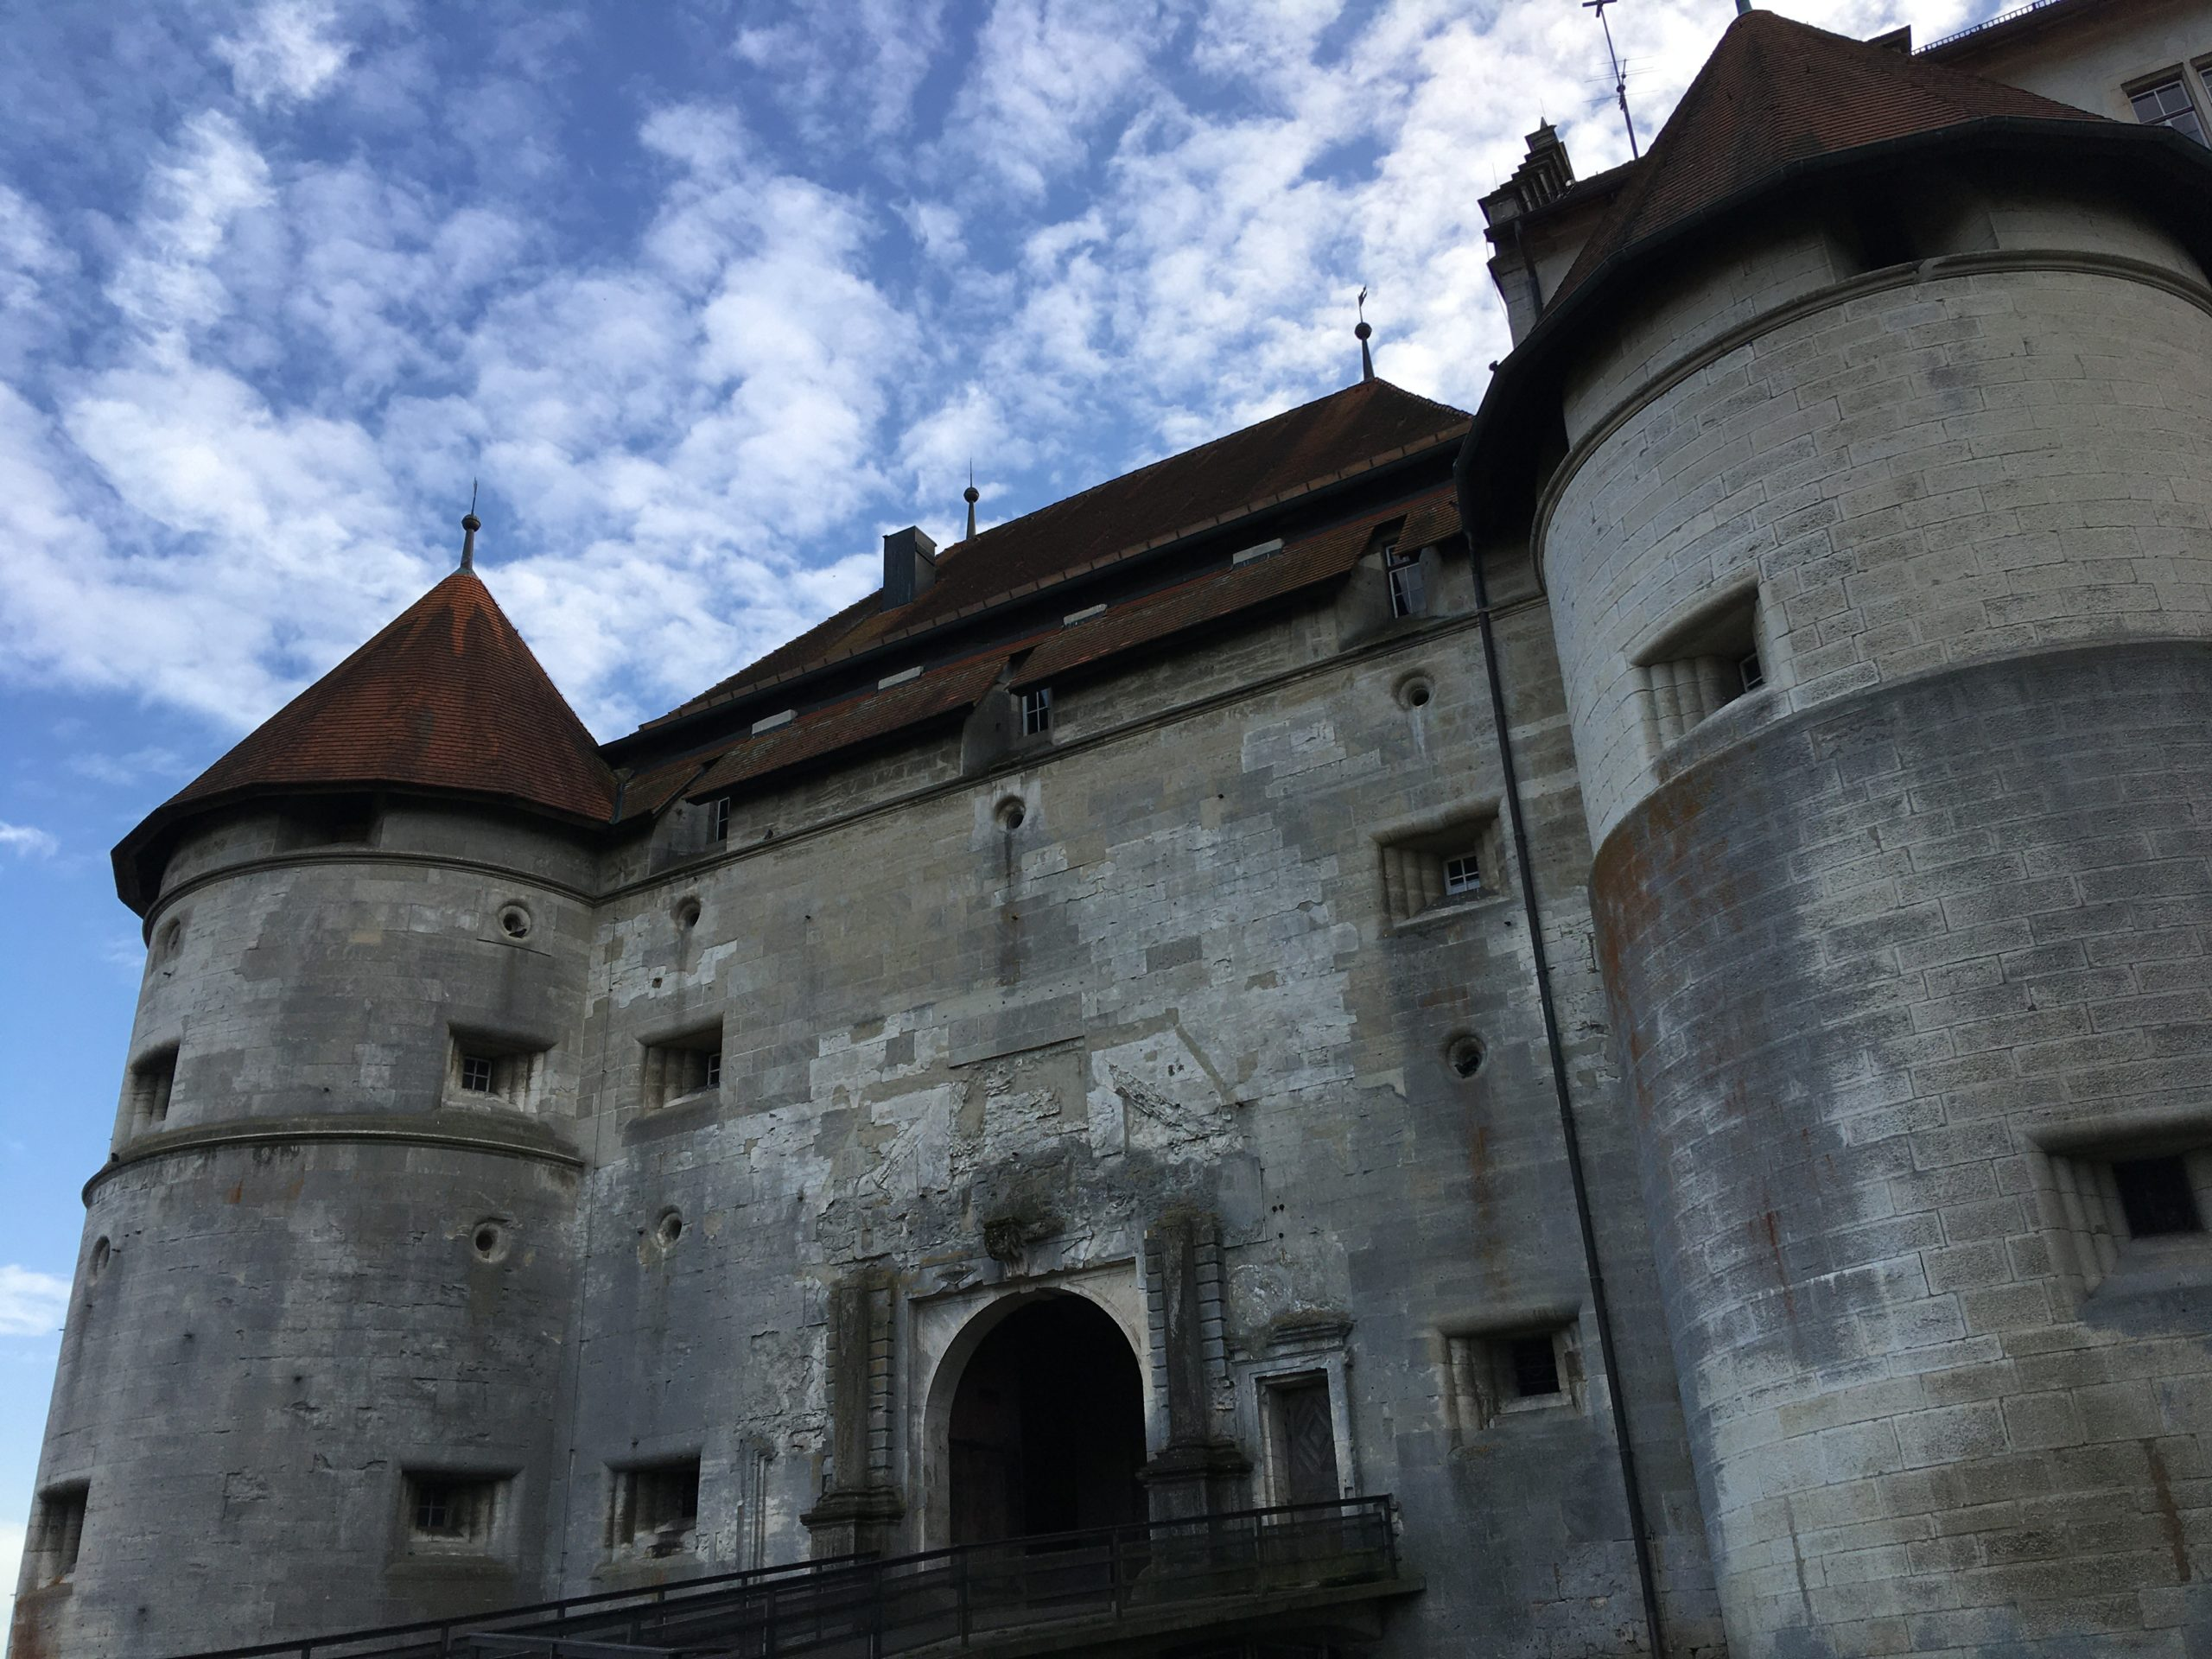 Schloss Hellenstein by Marie Theres Relin